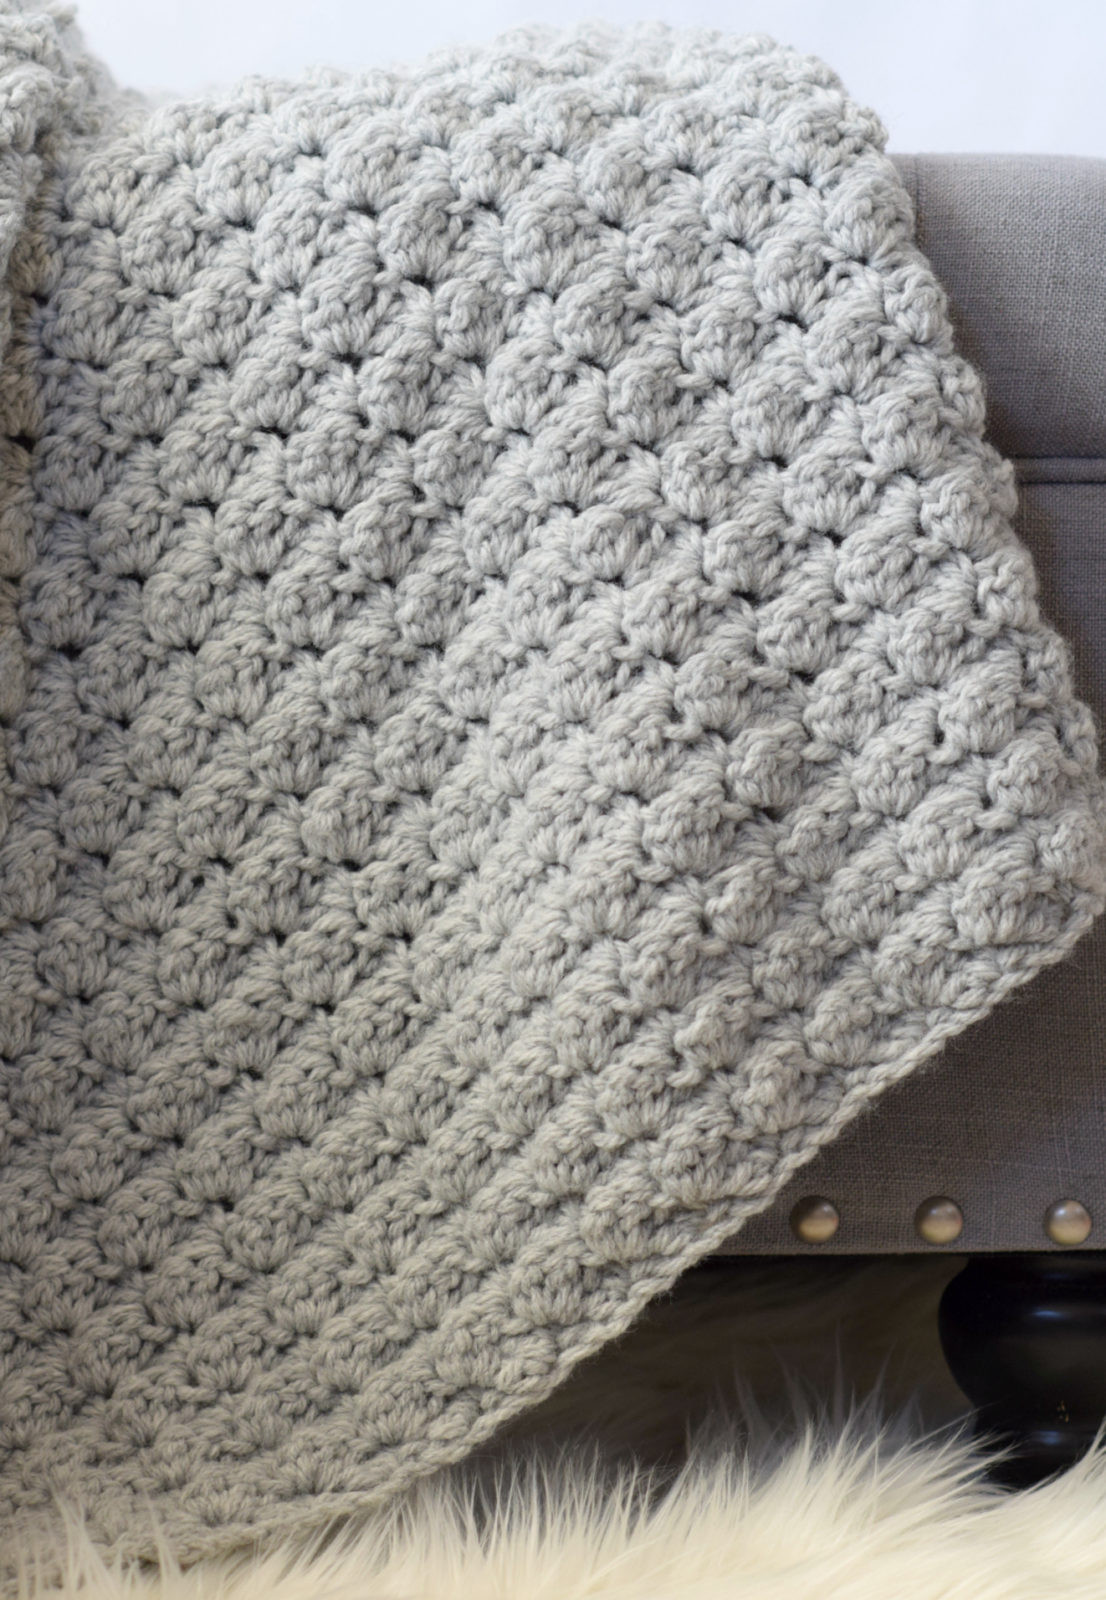 Easy Baby Blanket Patterns Luxury Simple Crocheted Blanket Go to Pattern – Mama In A Stitch Of Superb 48 Ideas Easy Baby Blanket Patterns